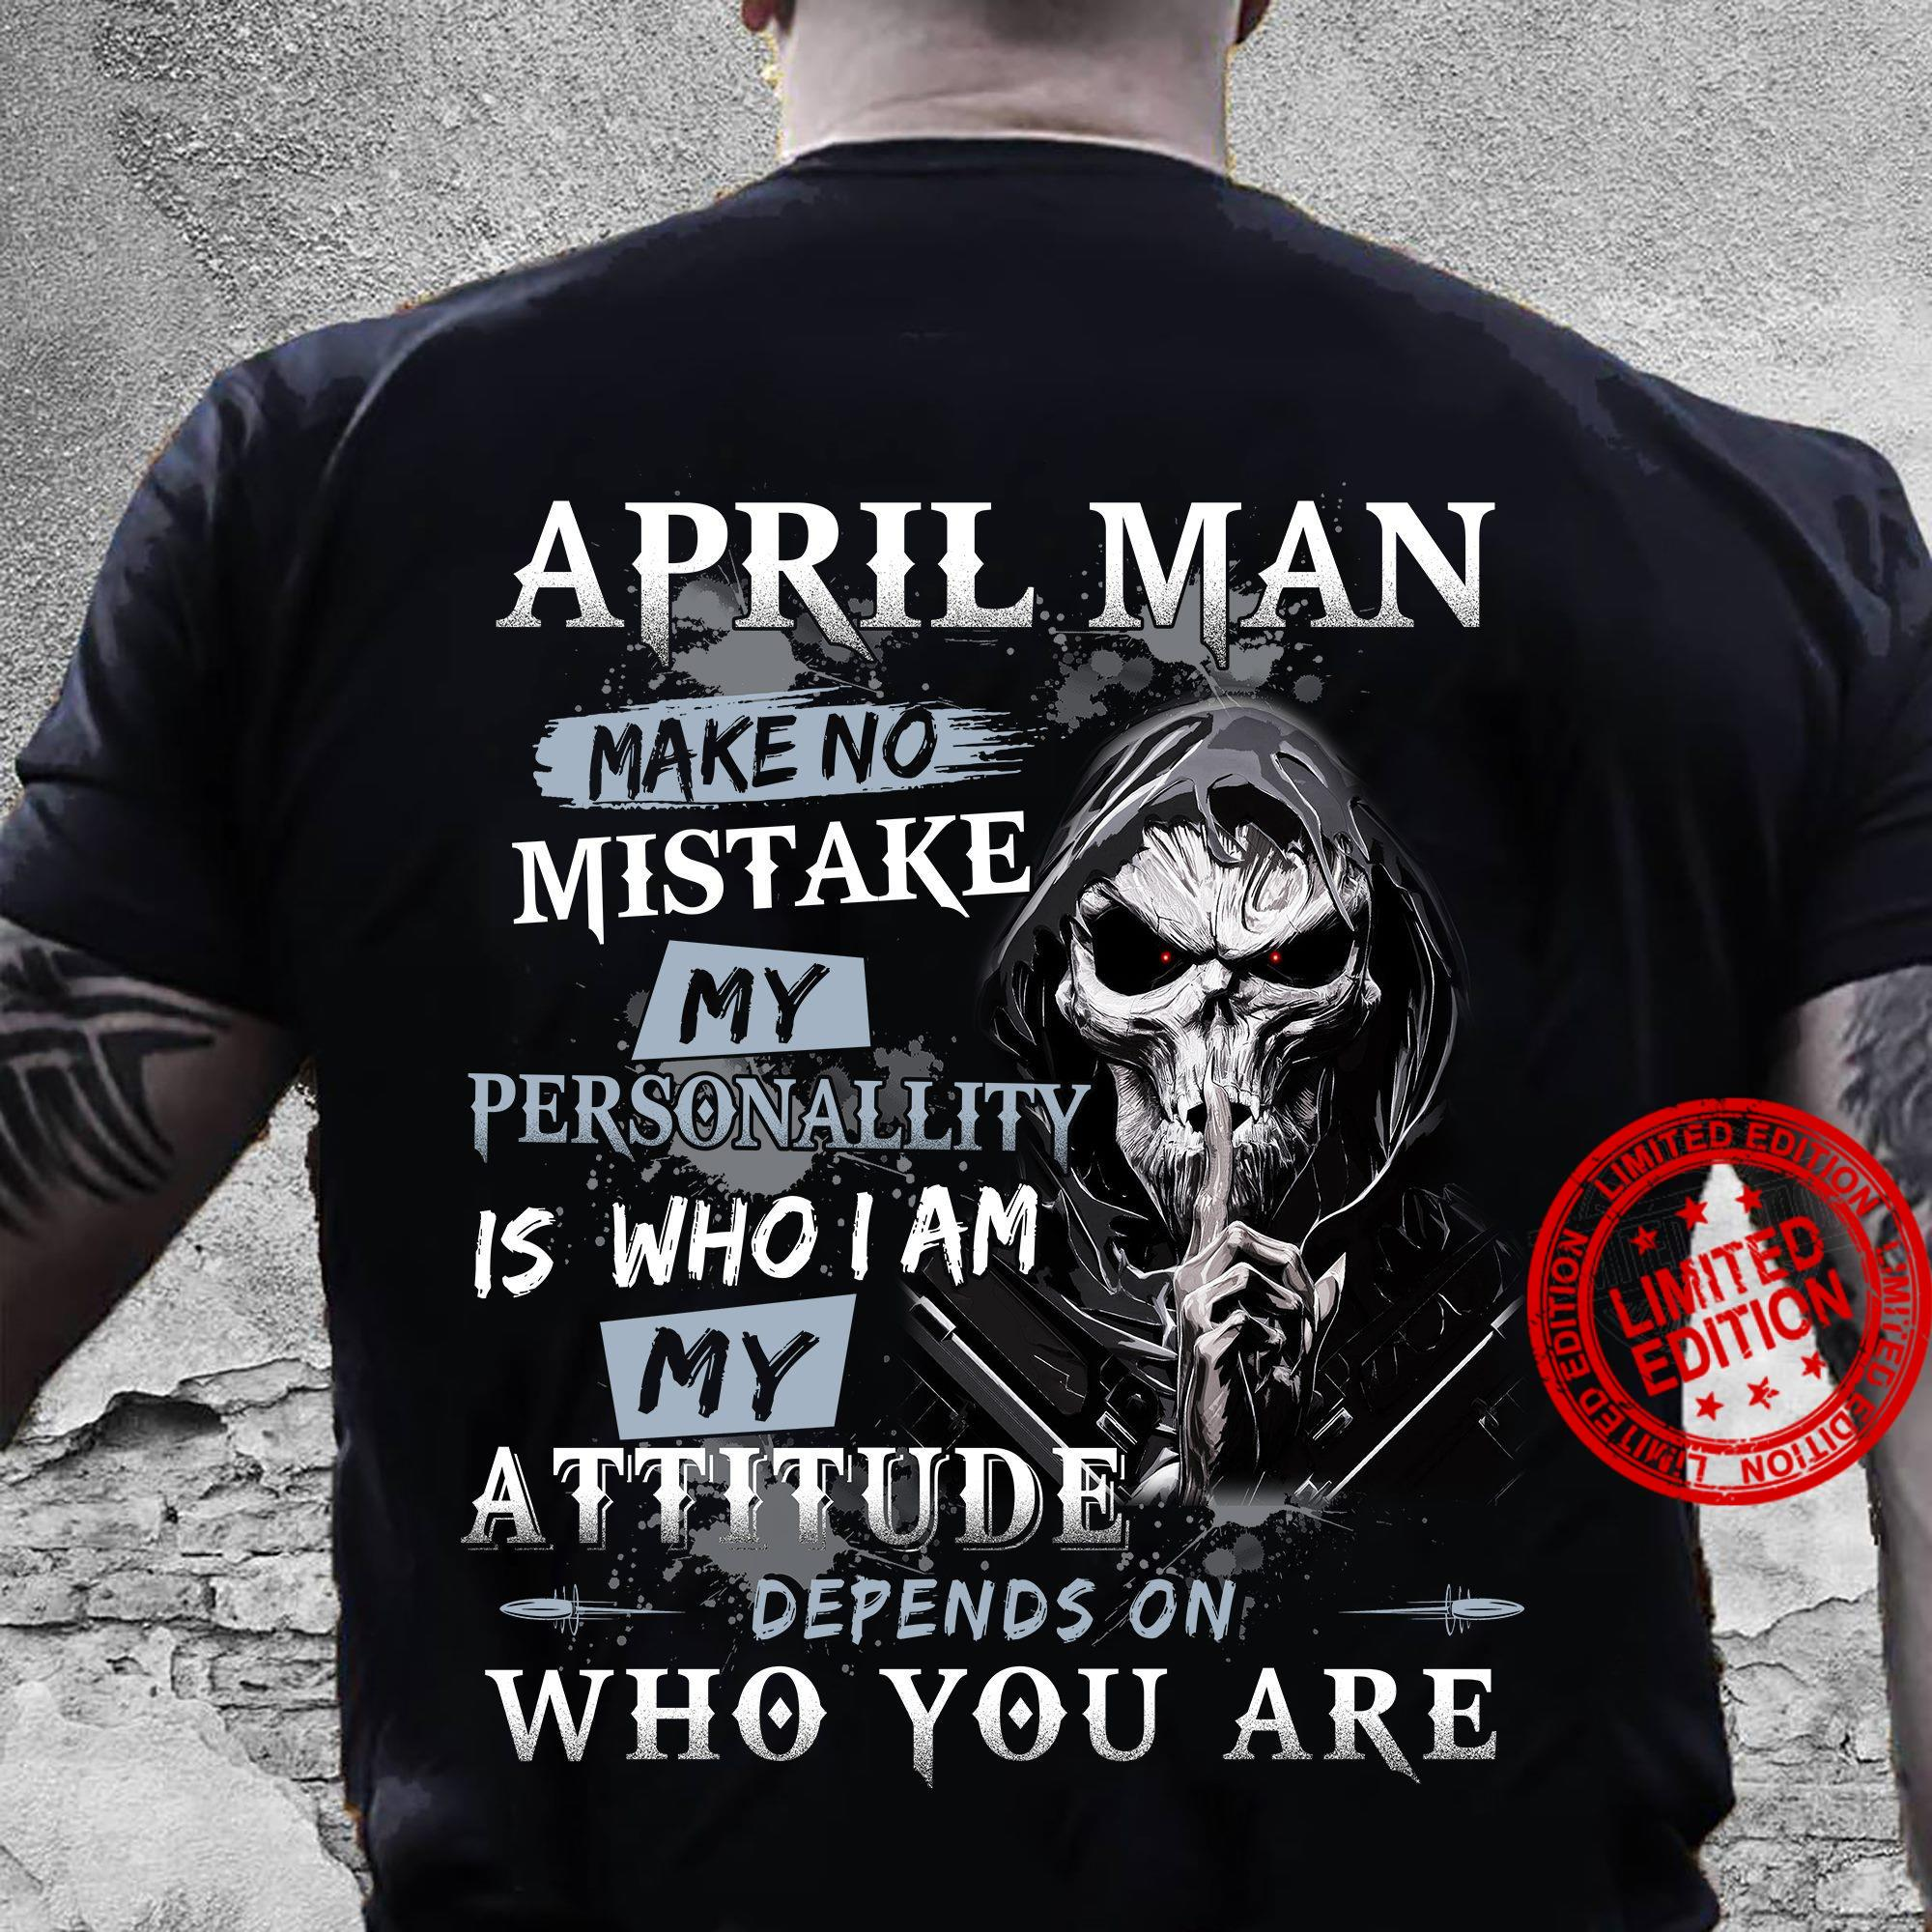 April Man Make No Mistake My Personallity Is Who I Am My Attitude Depends On Who You Are Shirt